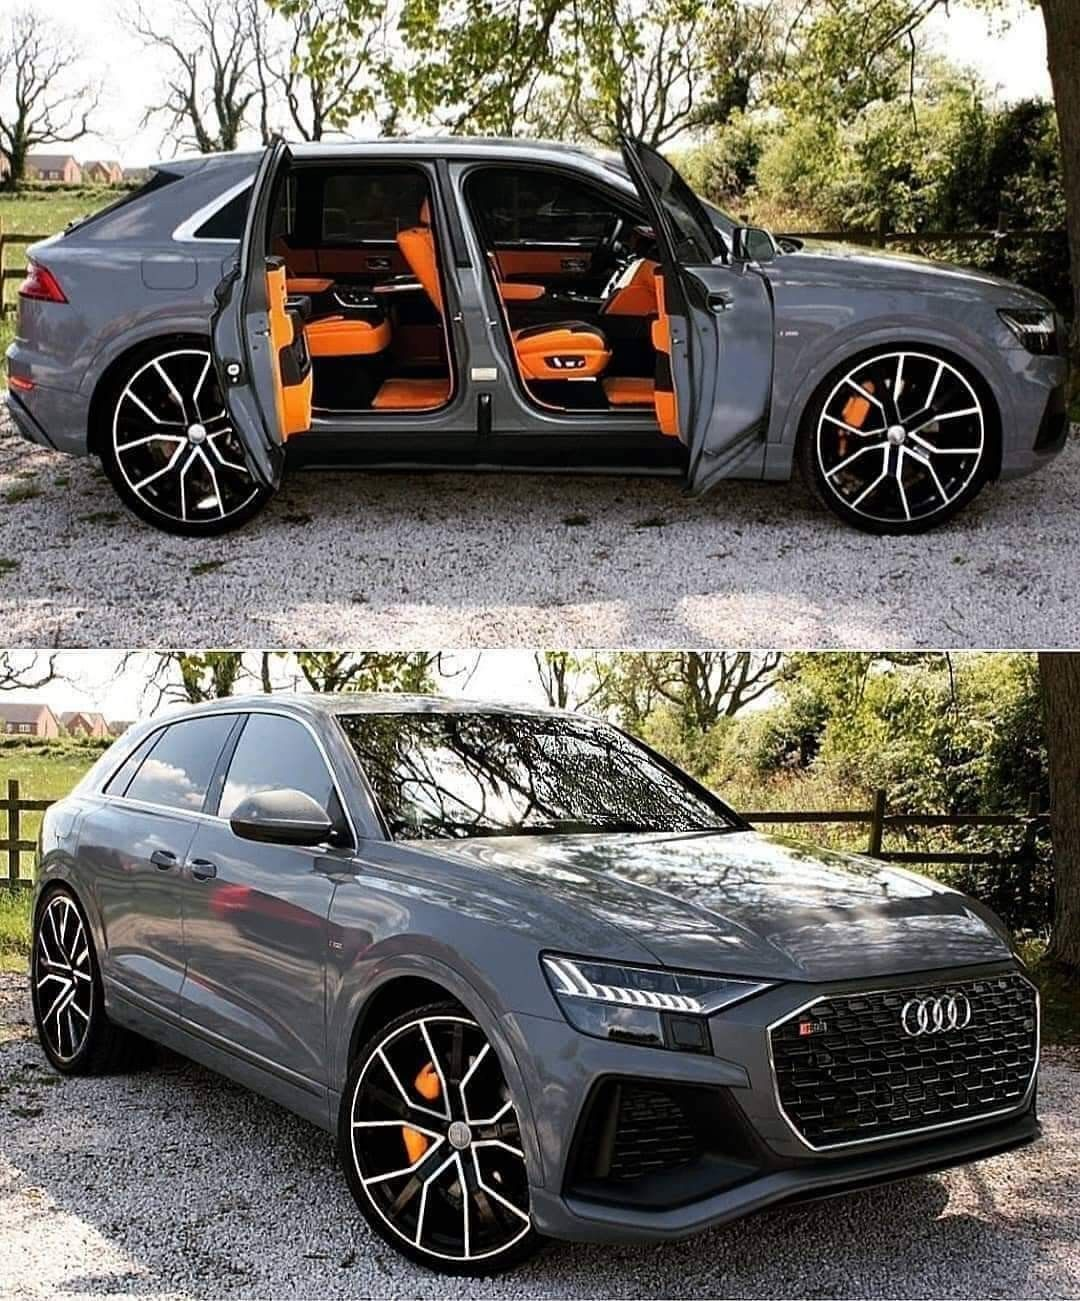 Pin By Brandon Mosteller On Other Sh T In 2020 Super Cars Dream Cars Audi